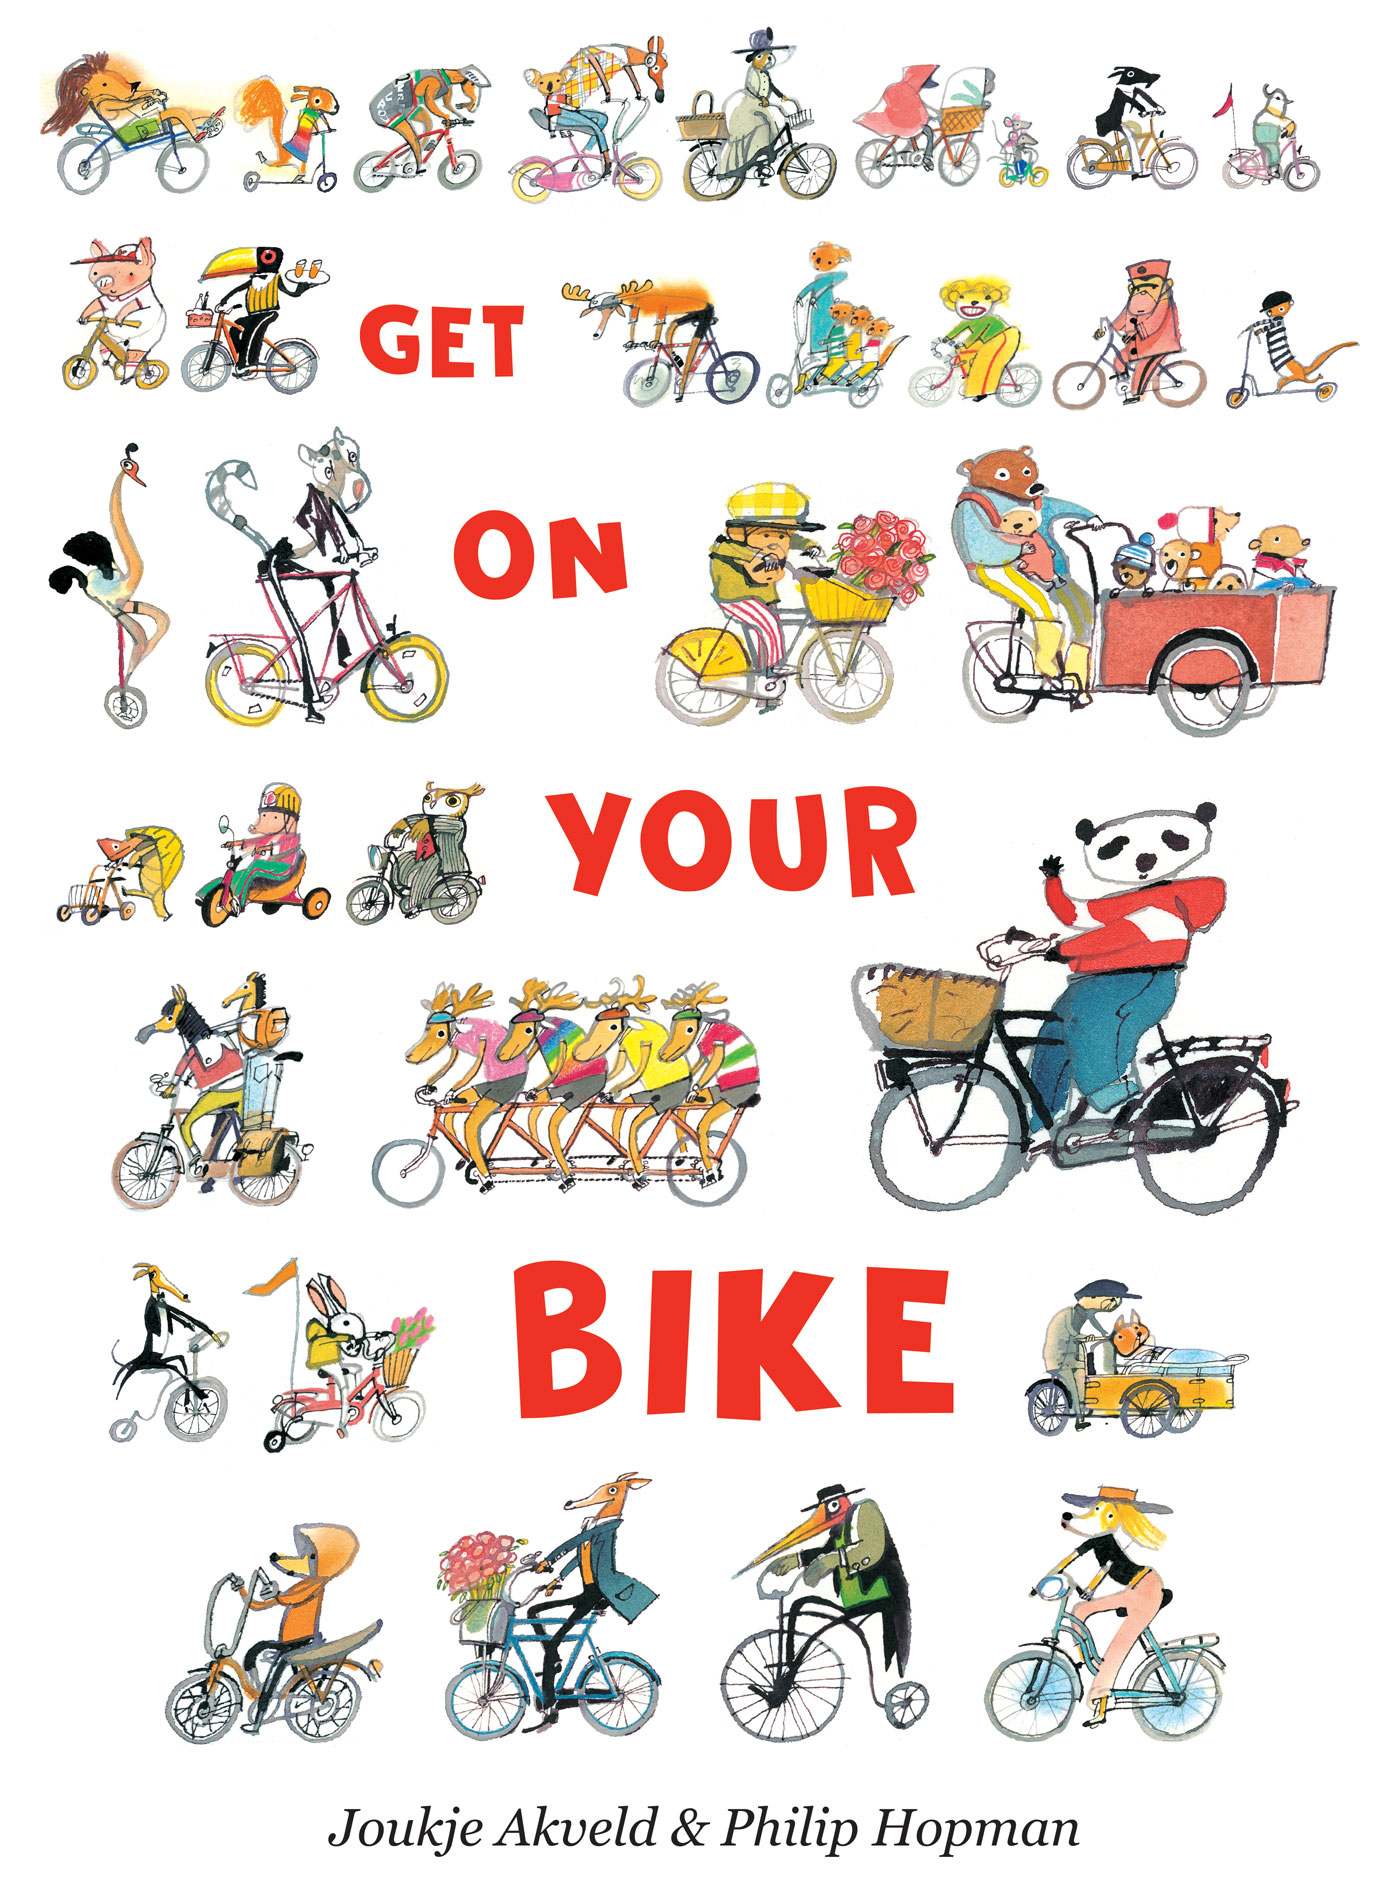 The Get on Your Bike